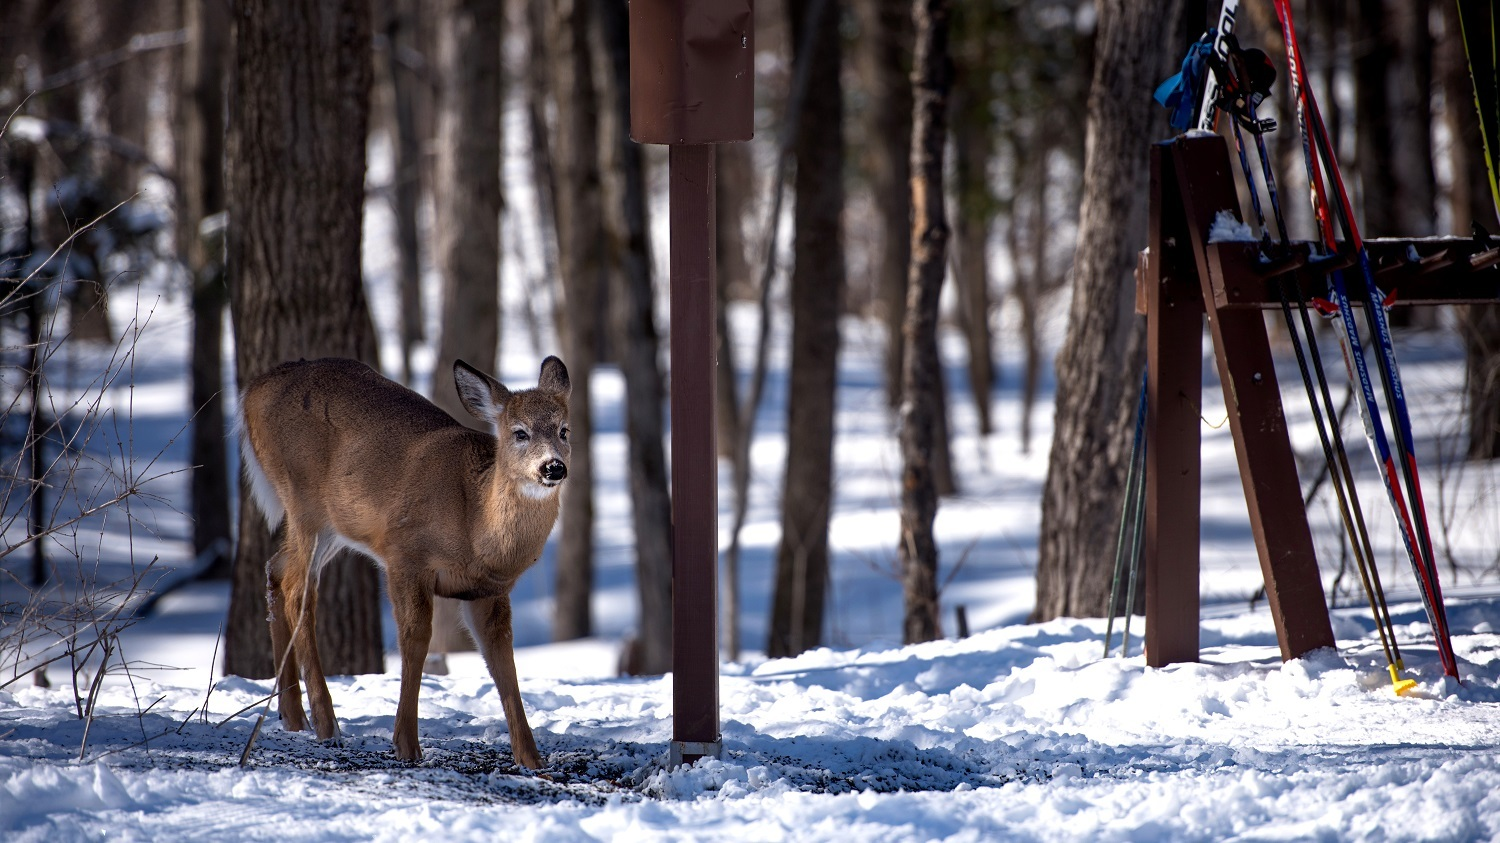 The park is home to more than 50 mammal species, including the white-tailed deer.